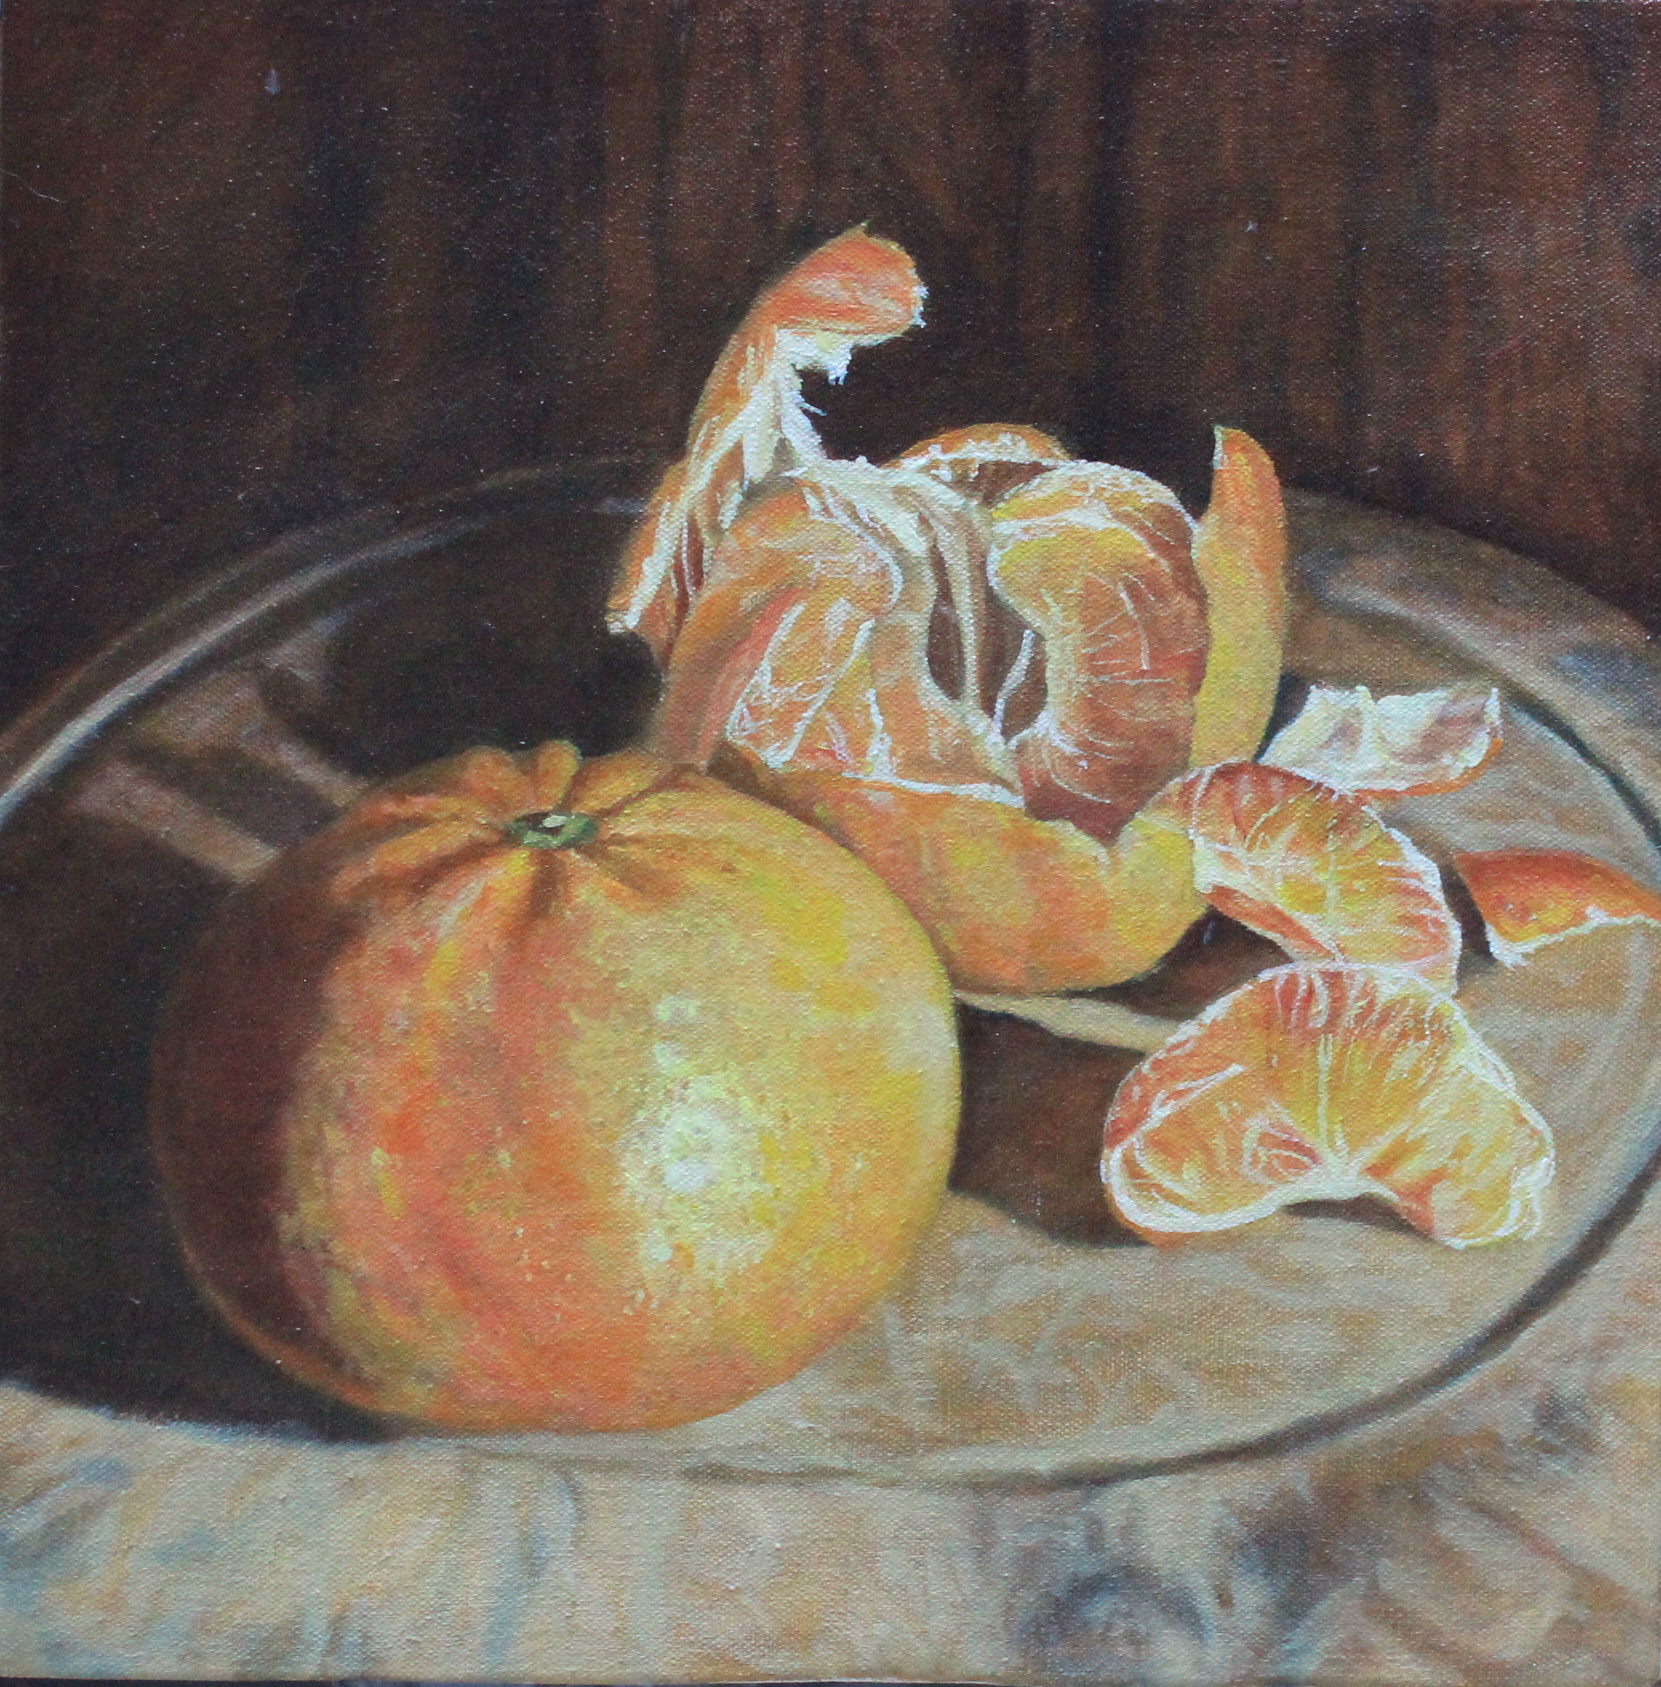 mandarins on wooden board - 12%22 x12%22